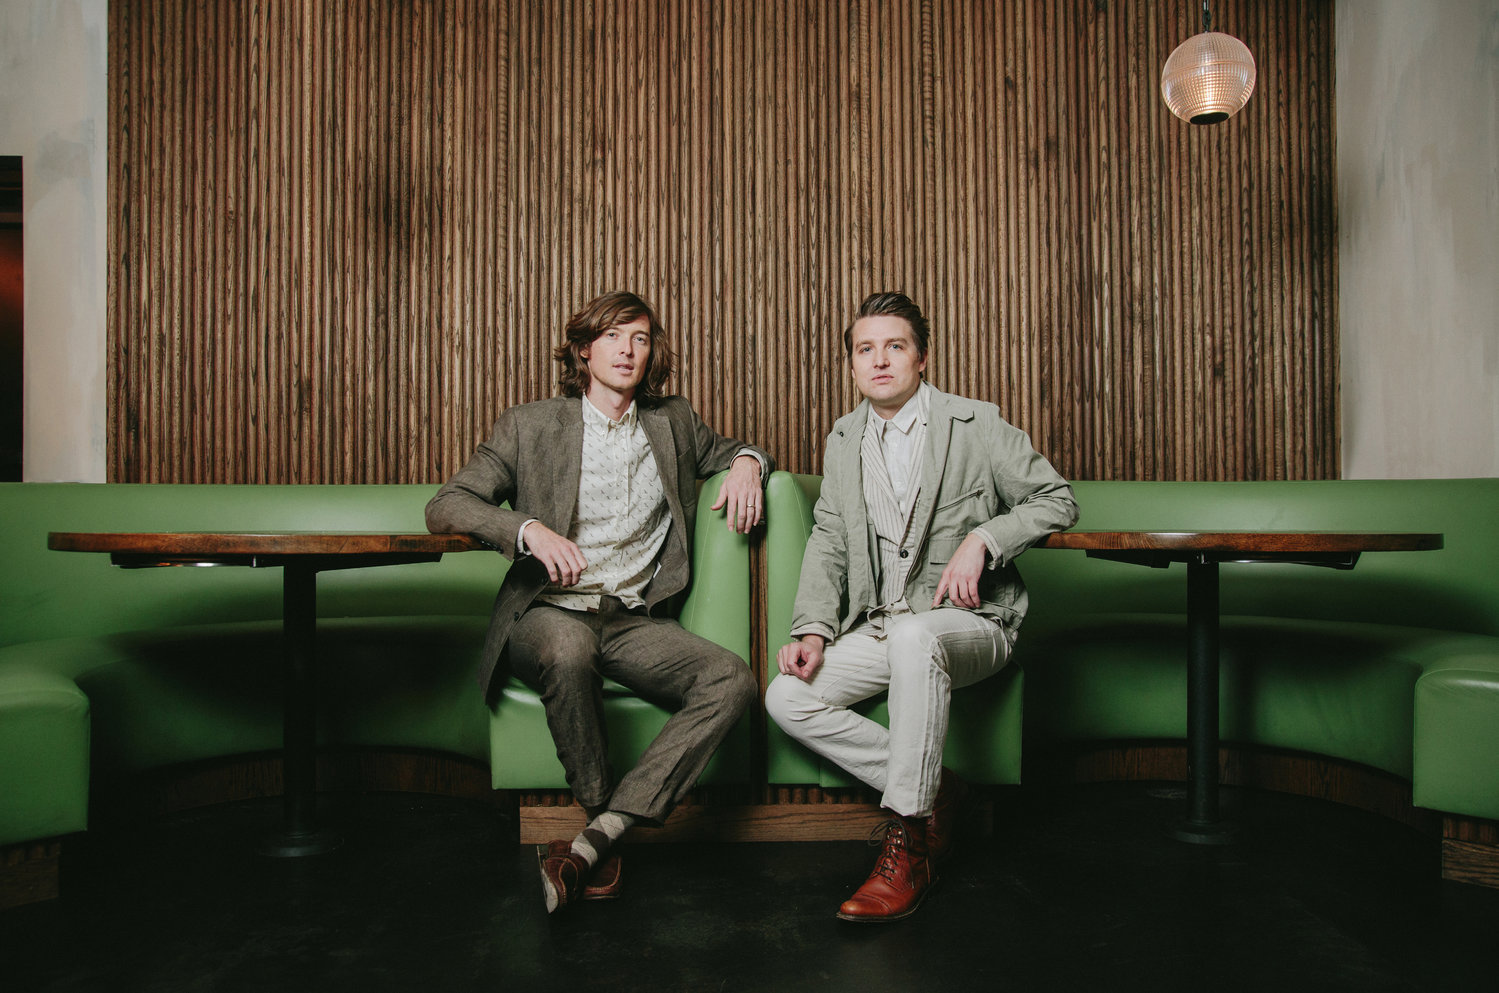 The Milk Carton Kids visit the Landmark on Main Street stage on June 20.